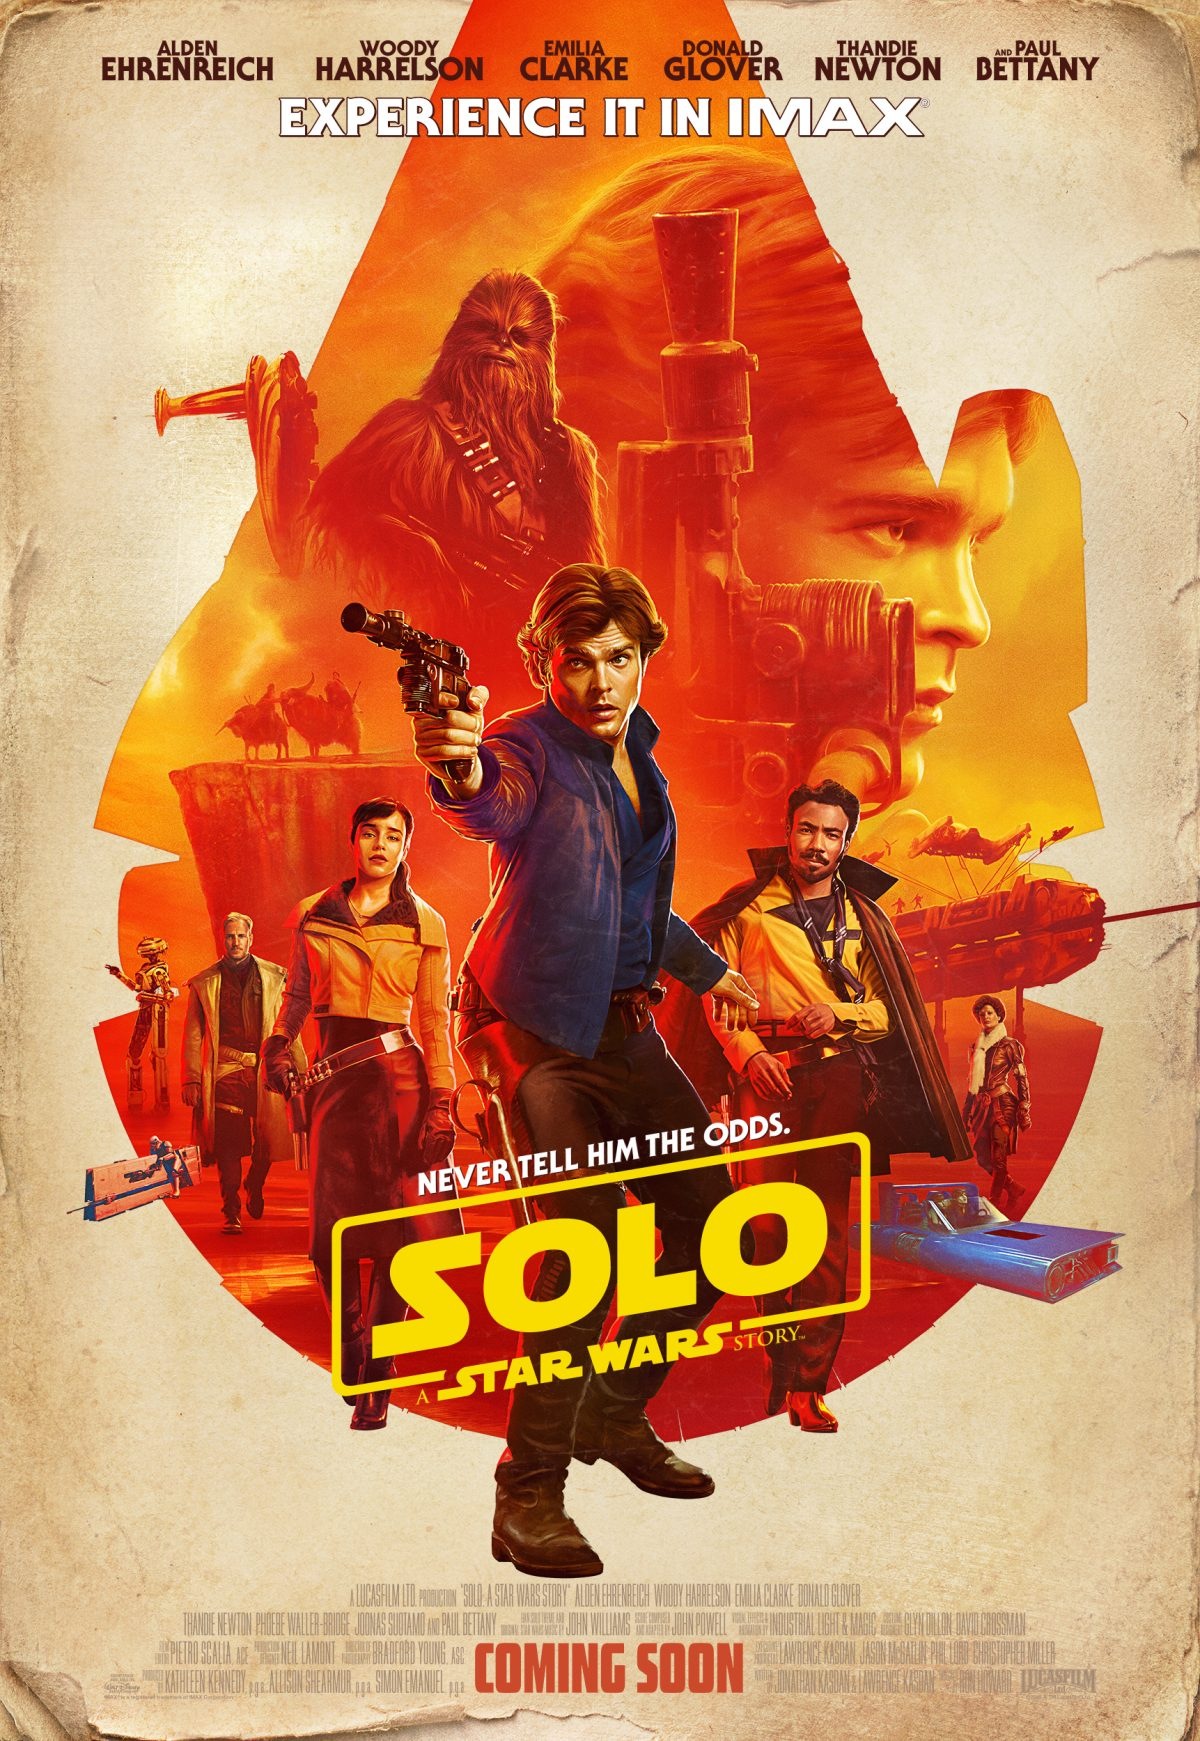 Exciting news for Star Wars fans, as Ron Howard reveals the exclusive SOLO: A Star Wars Story IMAX poster featuring Han Solo at the forefront. The art also includes Solo's mighty crew of Chewbacca, Lando Calrissian, Qi'Ra and more.